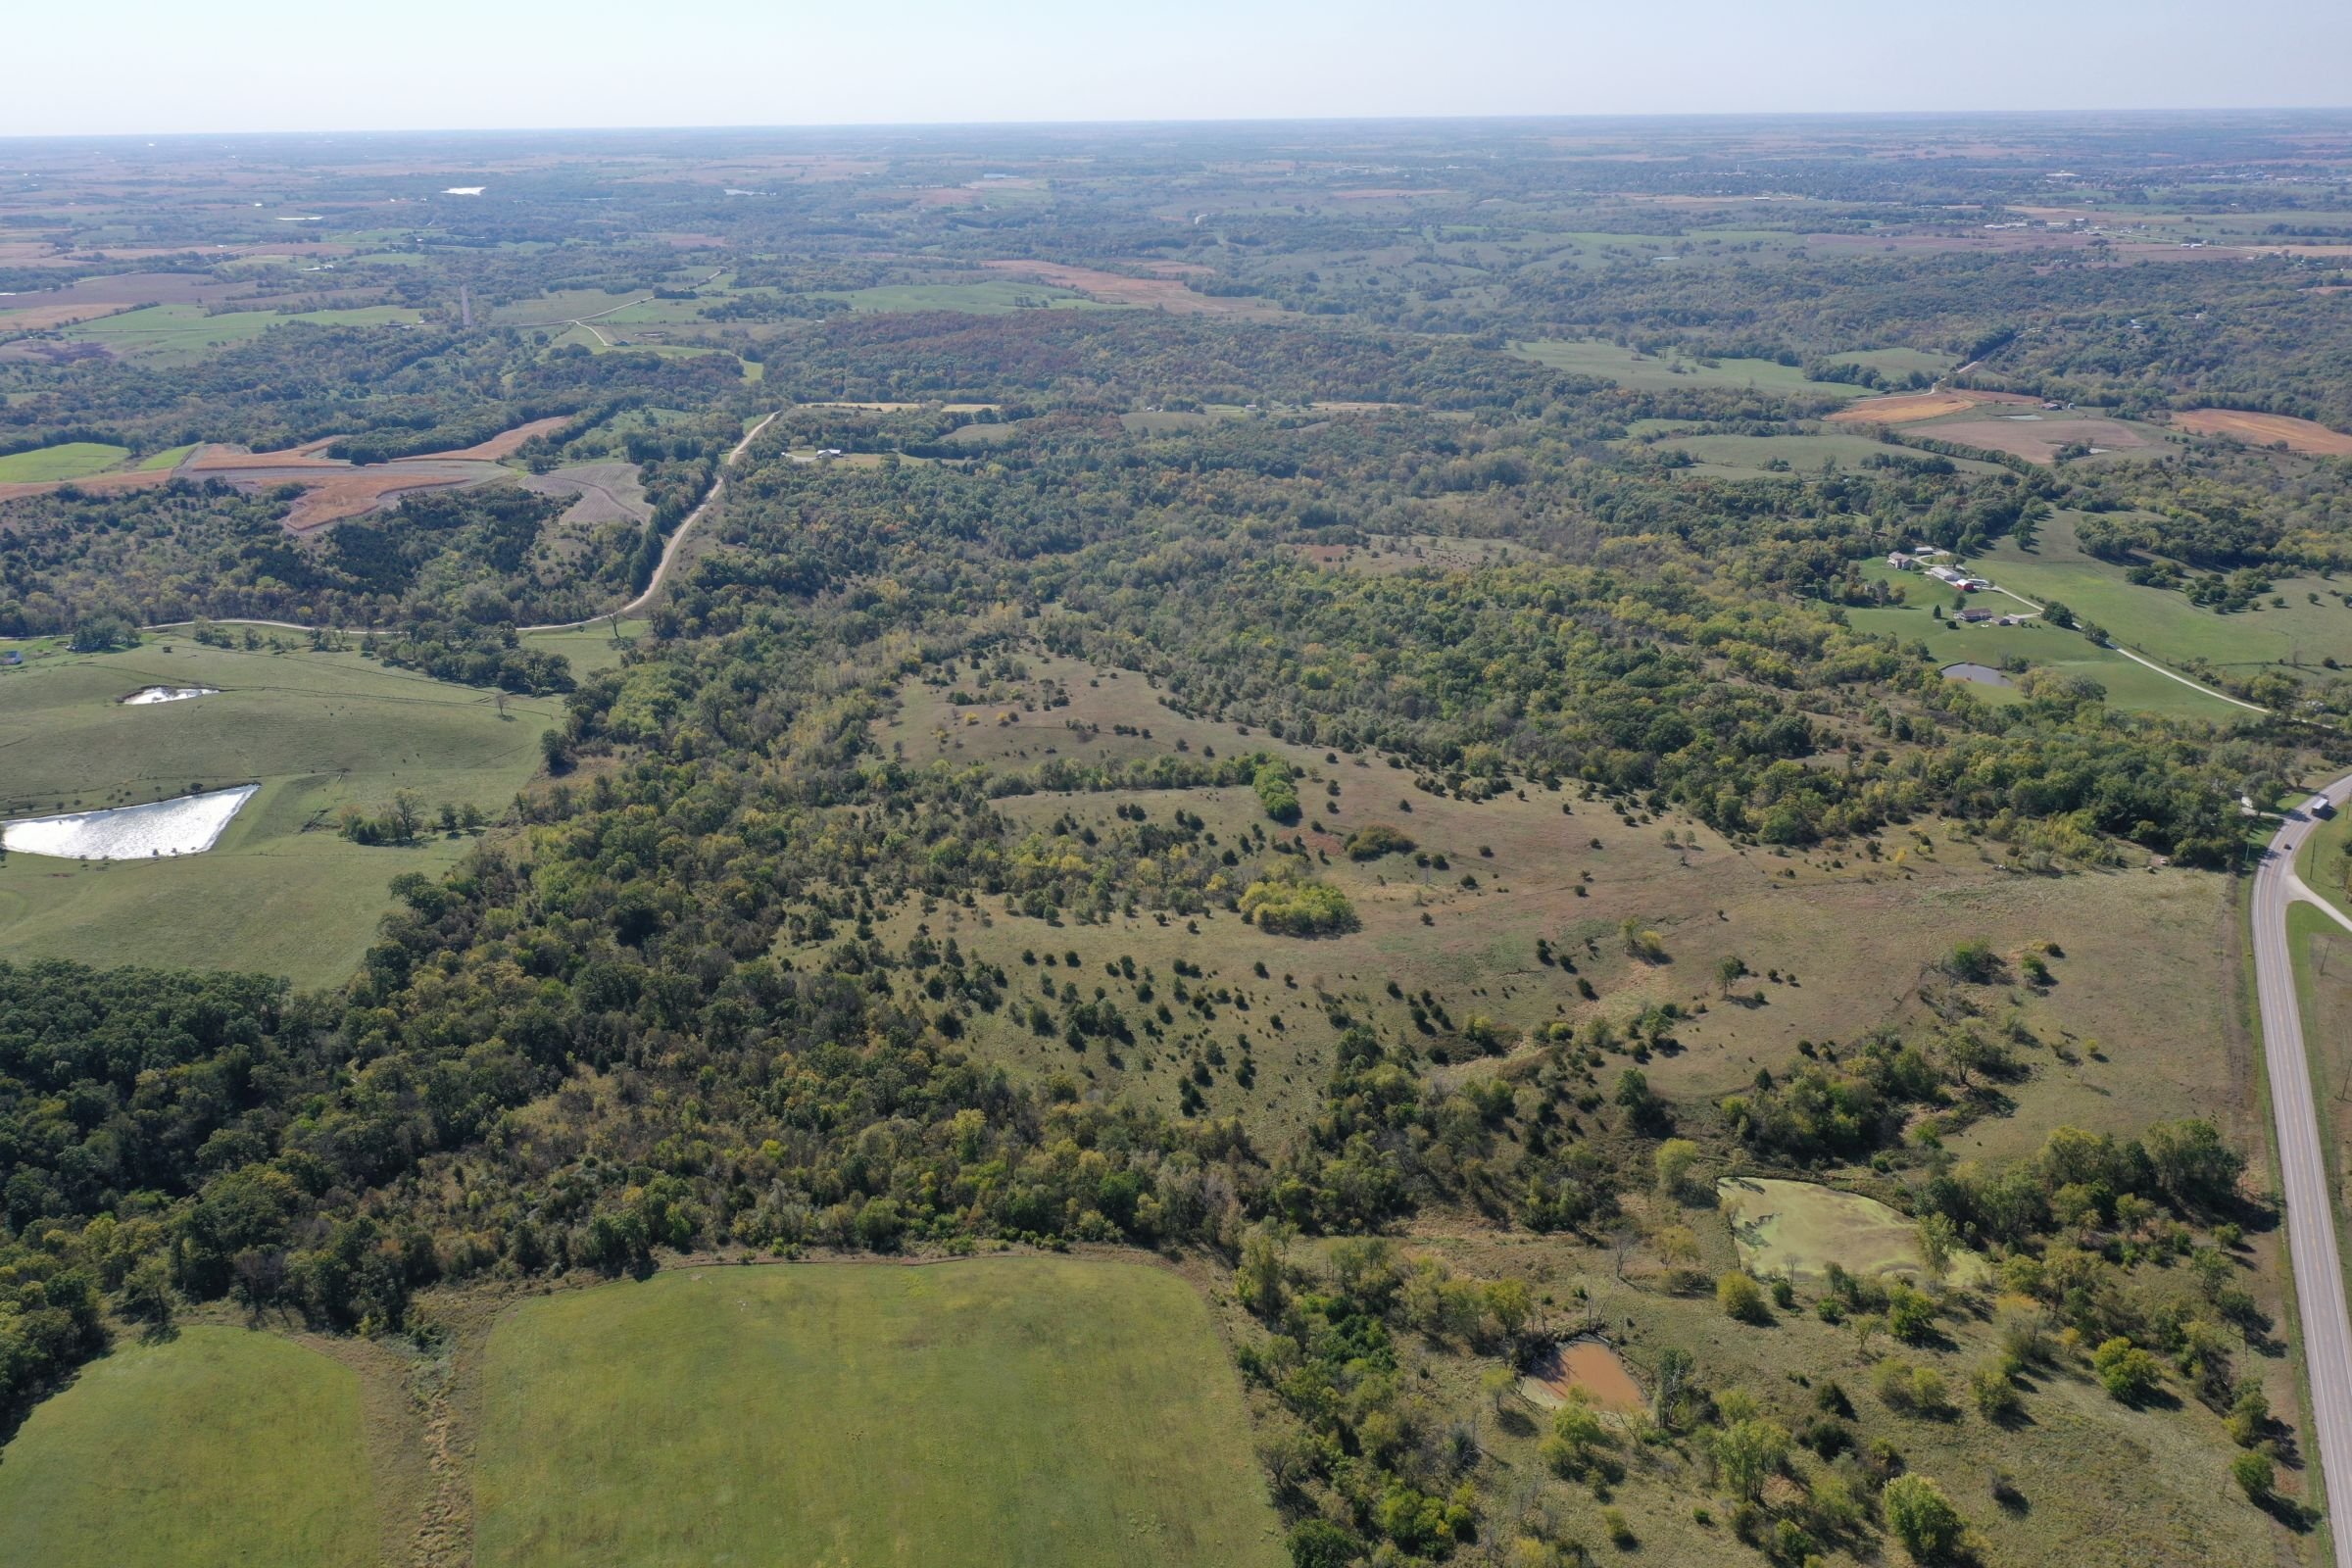 land-lucas-county-iowa-215-acres-listing-number-15206-2-2020-10-09-161127.jpg